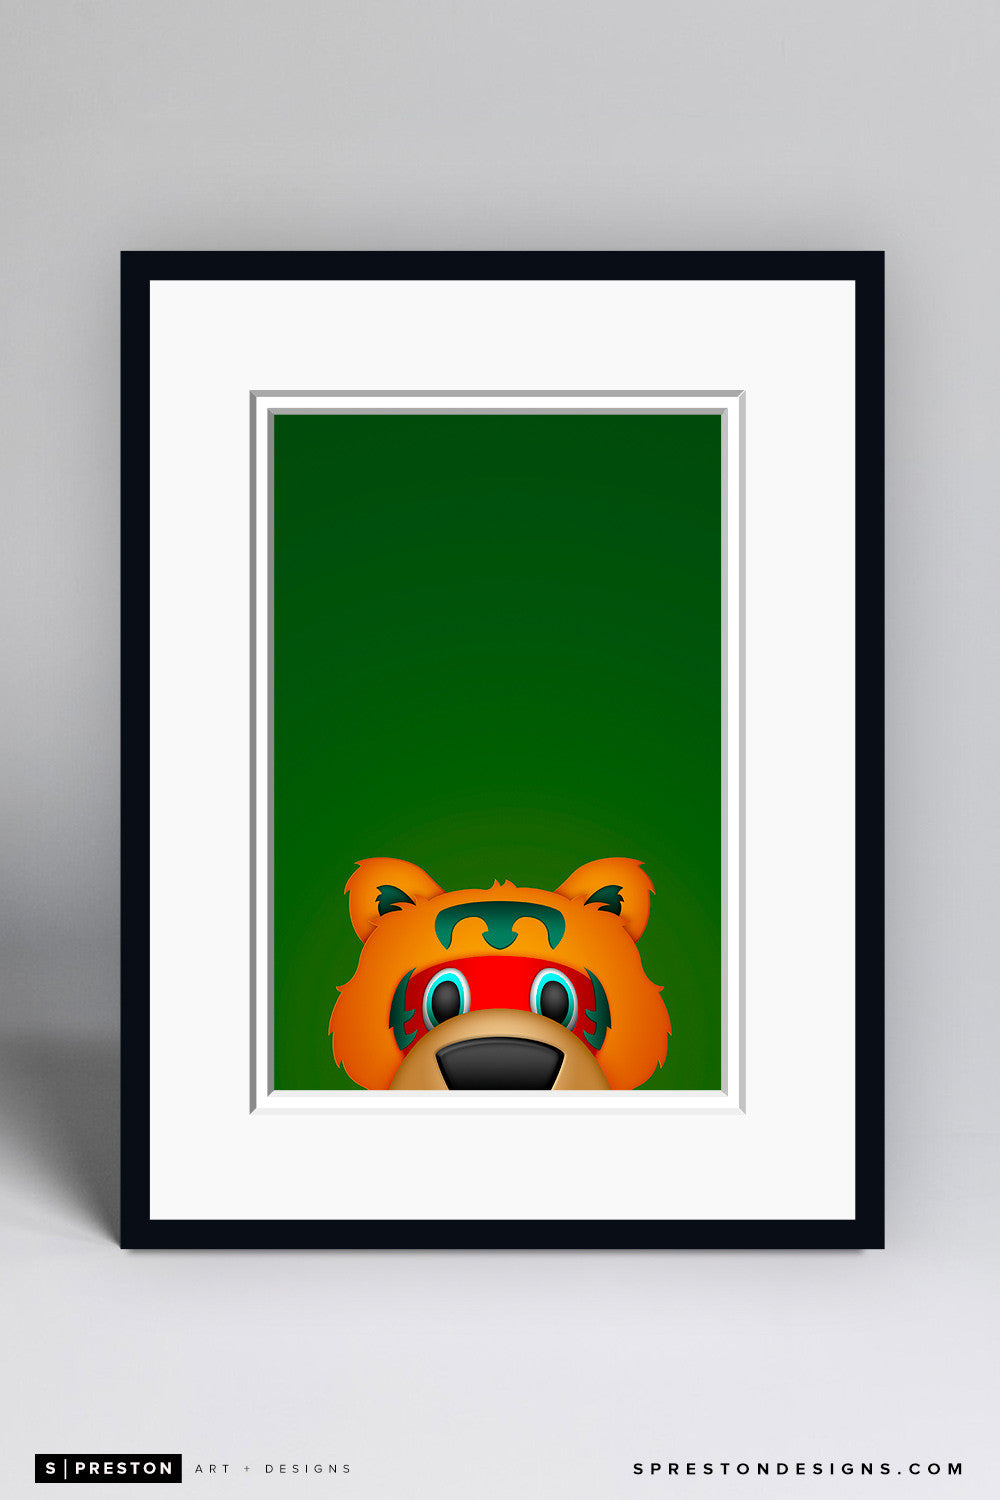 Minimalist Nordy Art Print - Minnesota Wild - S. Preston Art + Designs